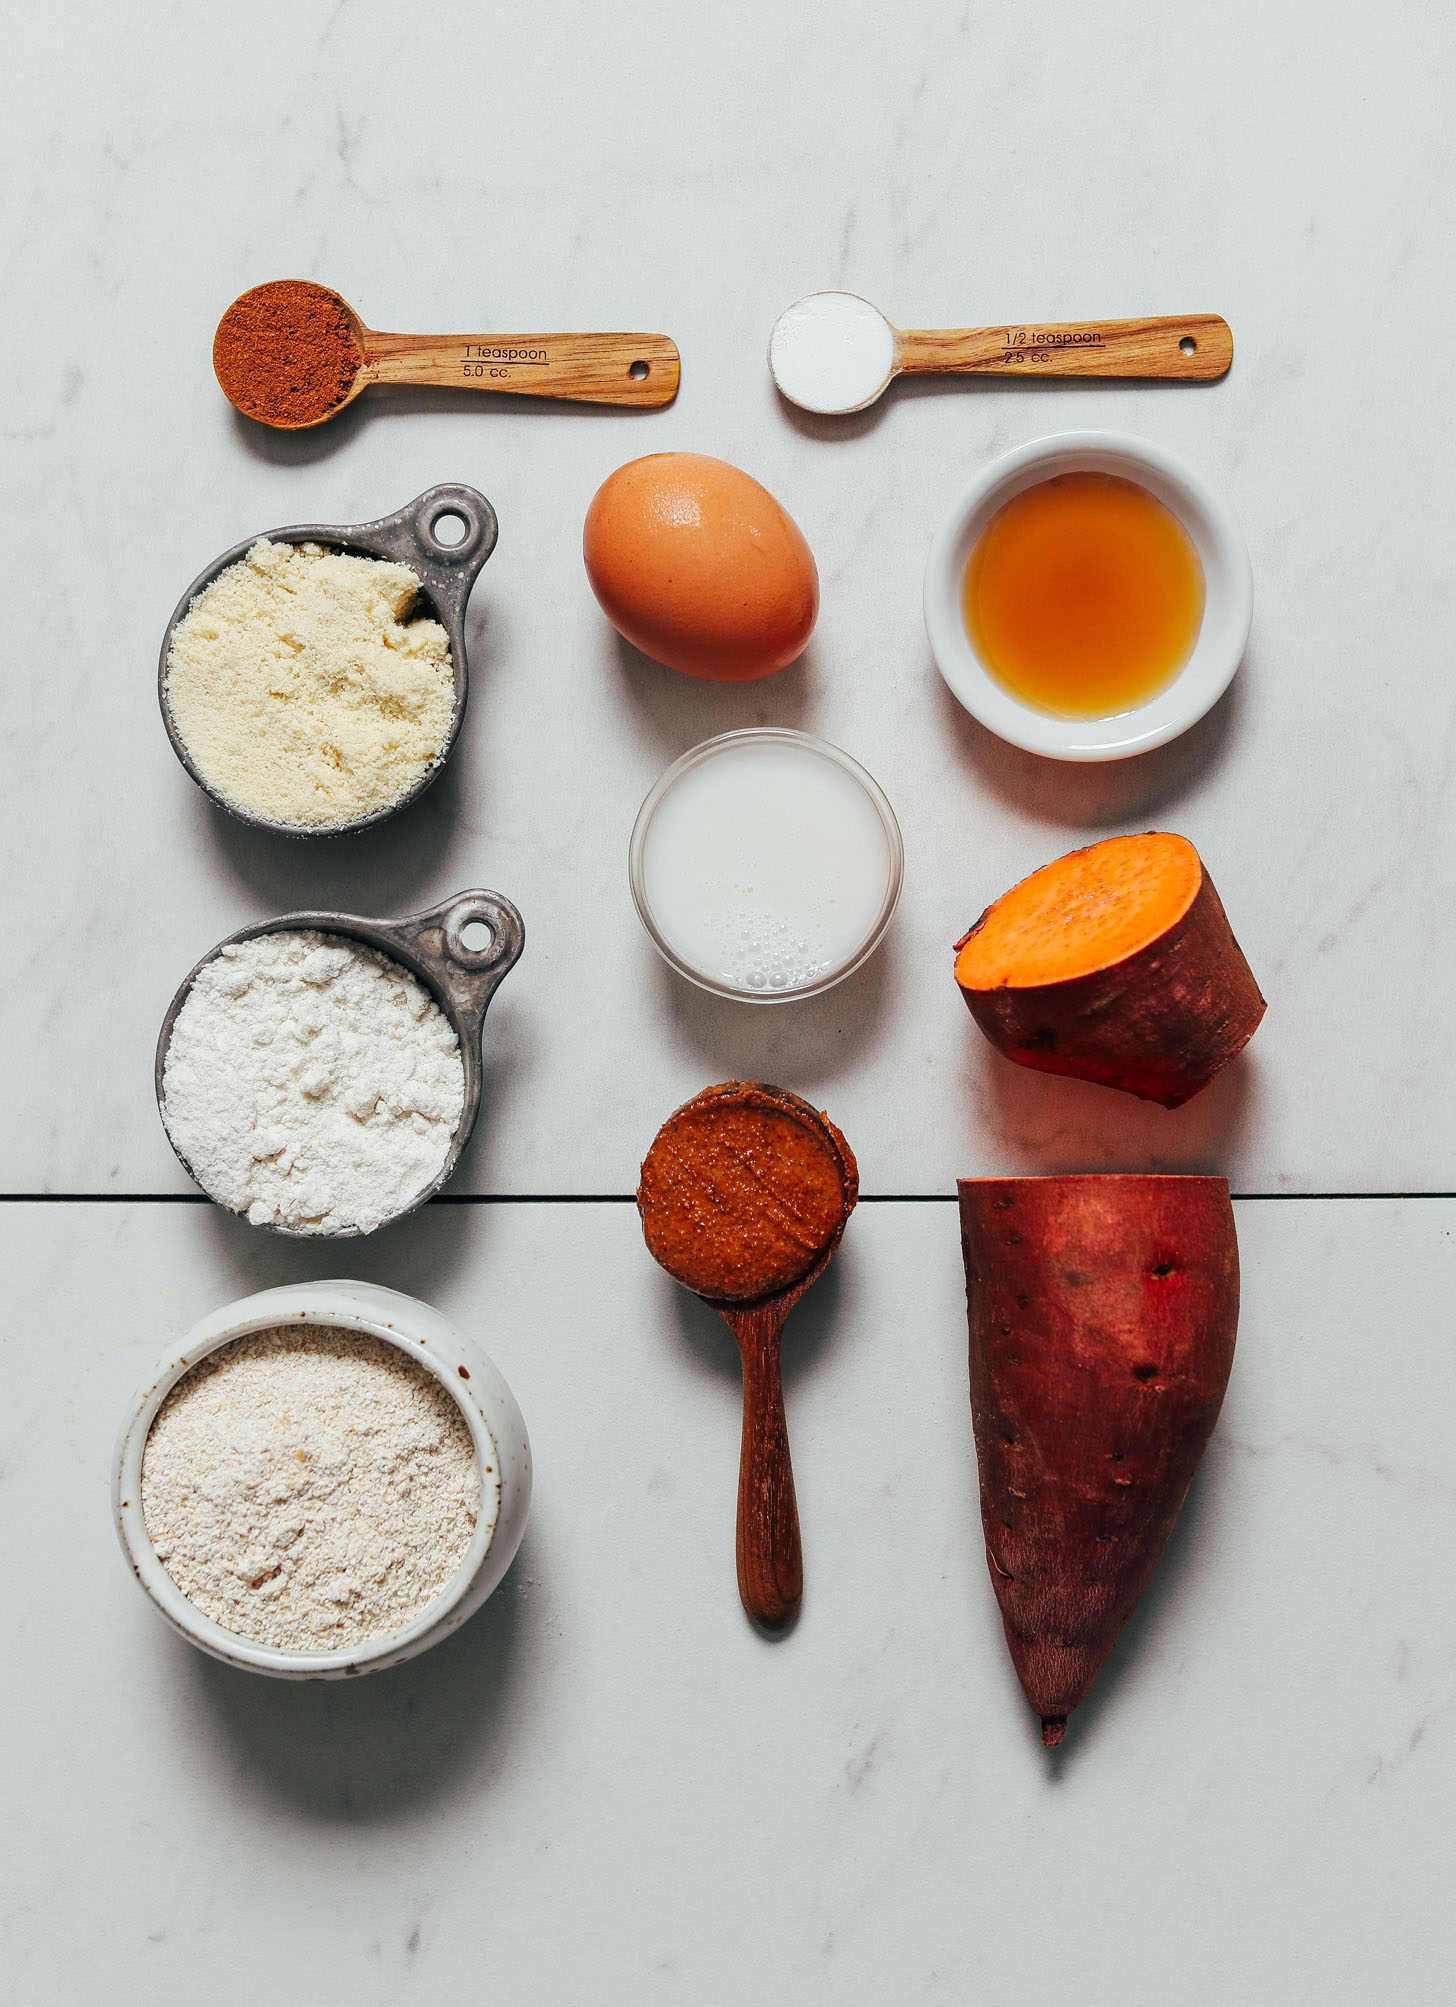 Sweet potato, egg, dairy-free milk, and other ingredients for making our Almond Butter Sweet Potato Muffins